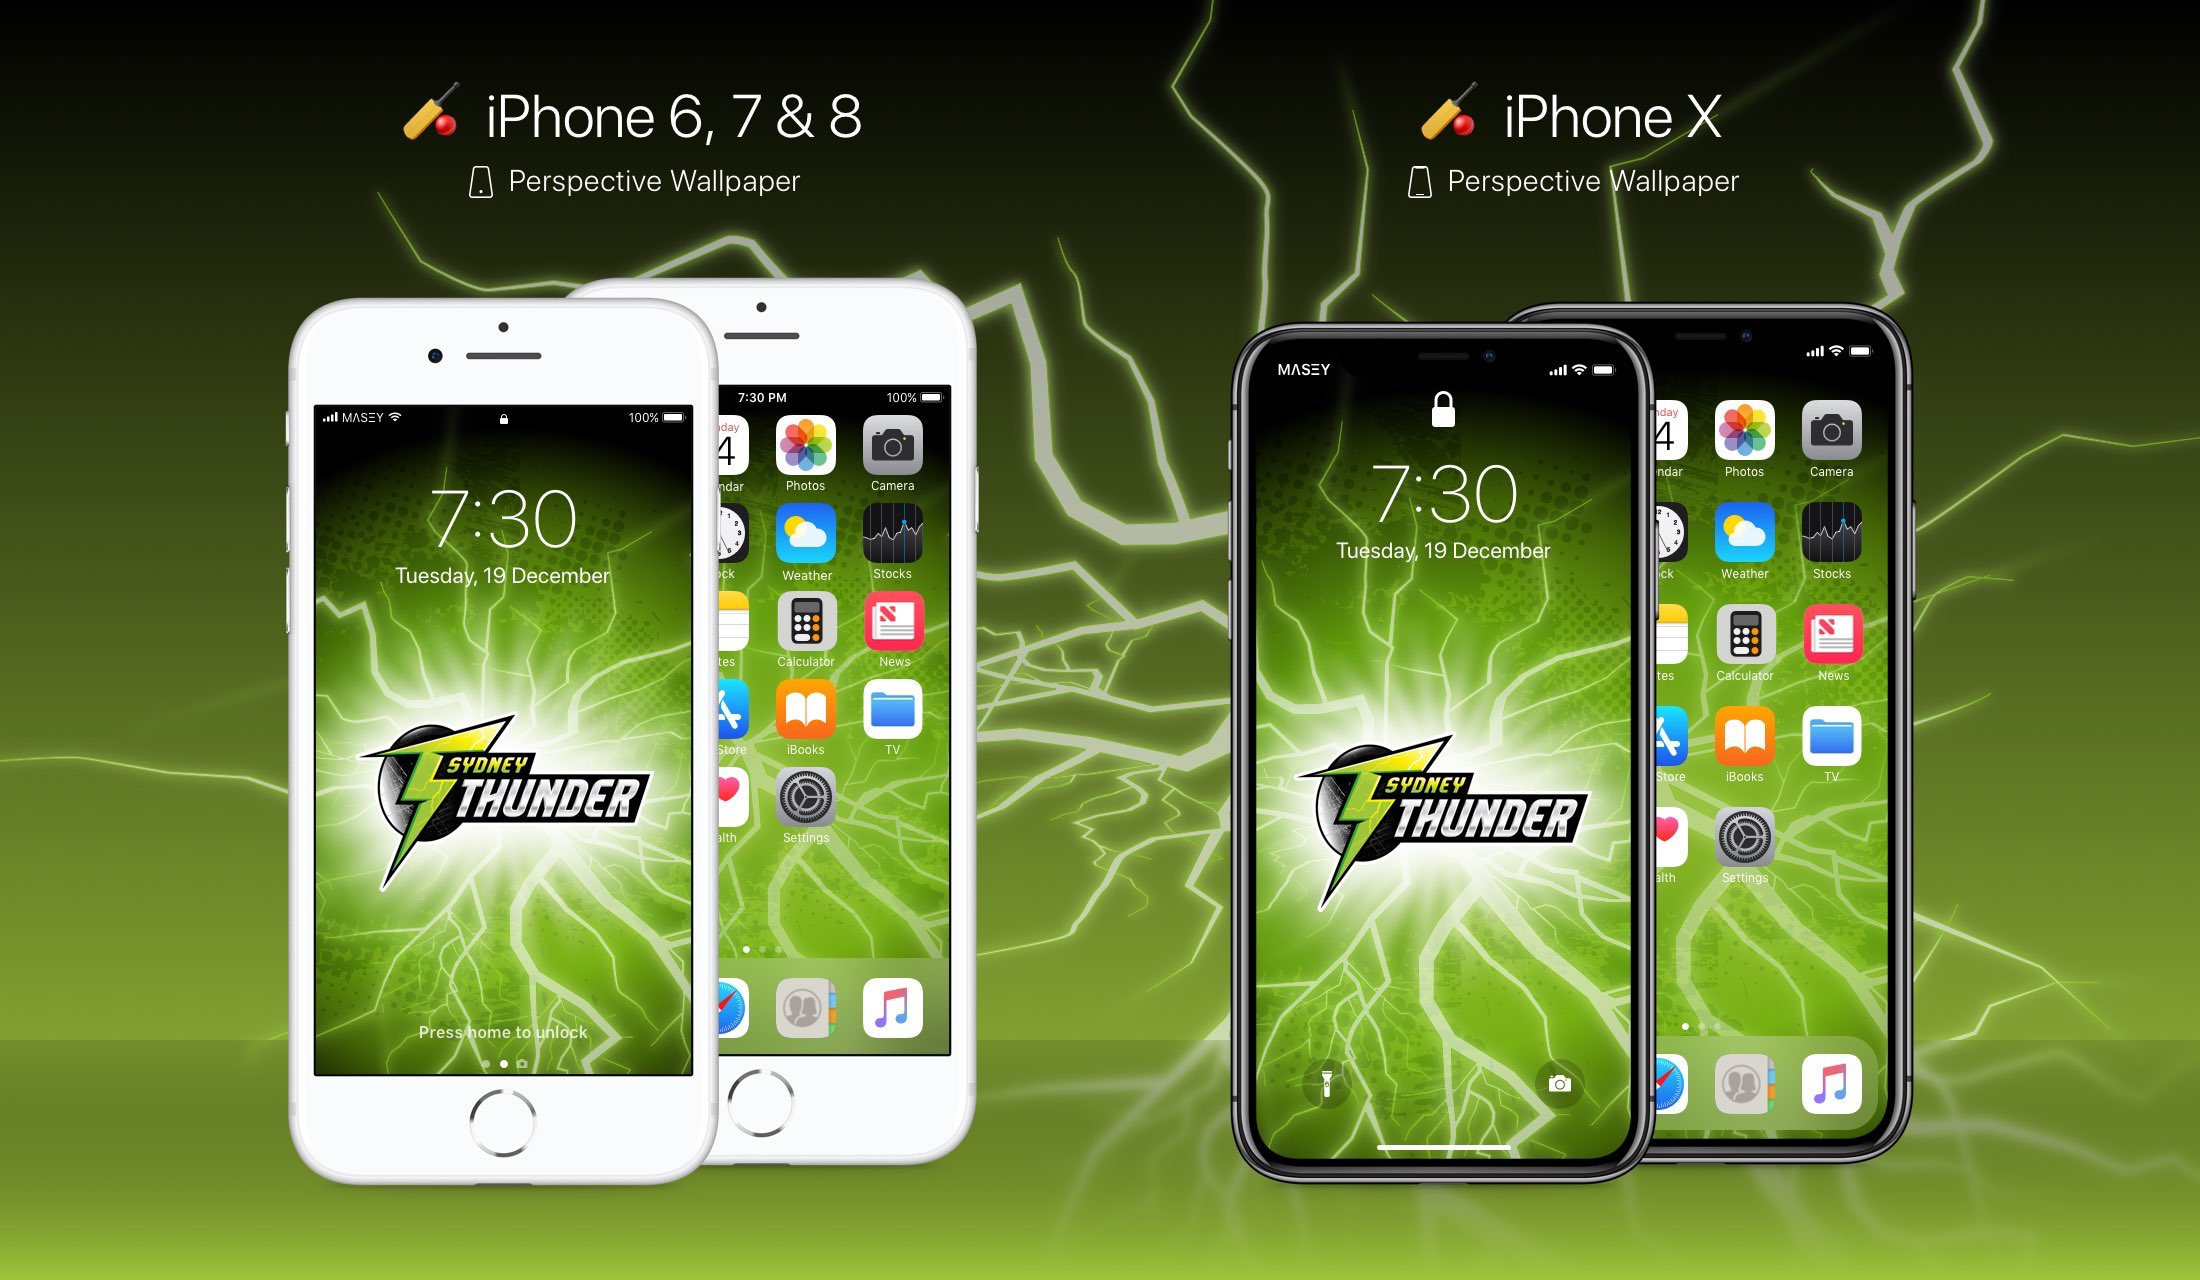 Sydney Thunder iPhone Wallpaper